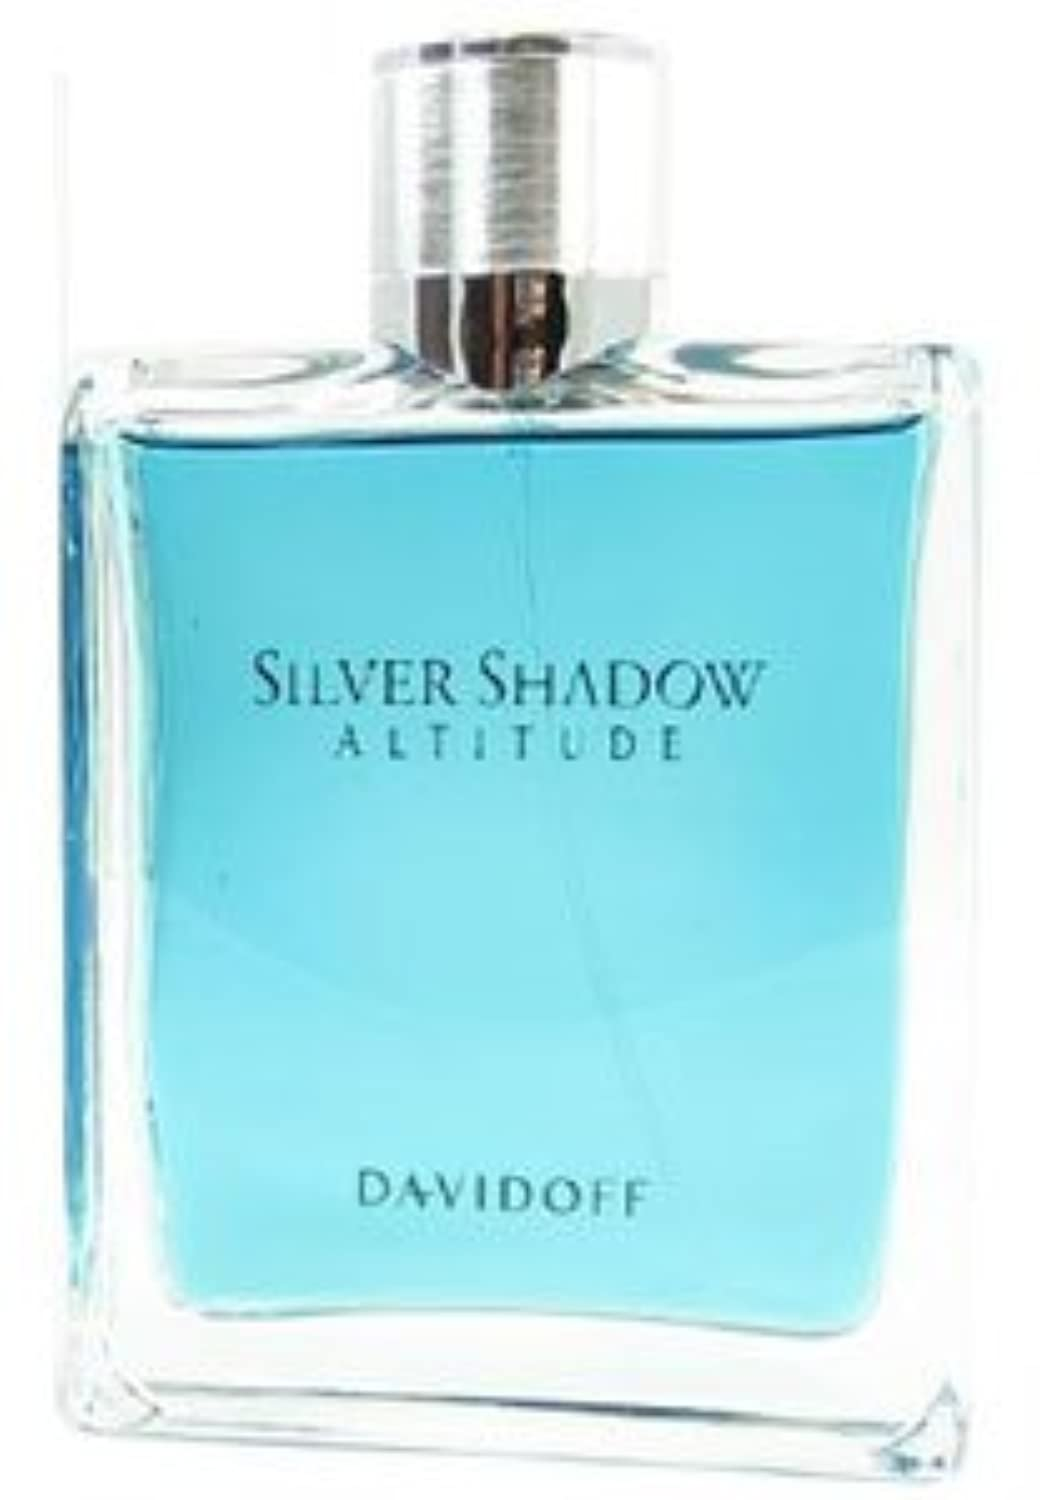 Silver Shadow Altitude (シルバーシャドウ アルティテュード) 1.7 oz (50ml) EDT Spray by Davidoff for men